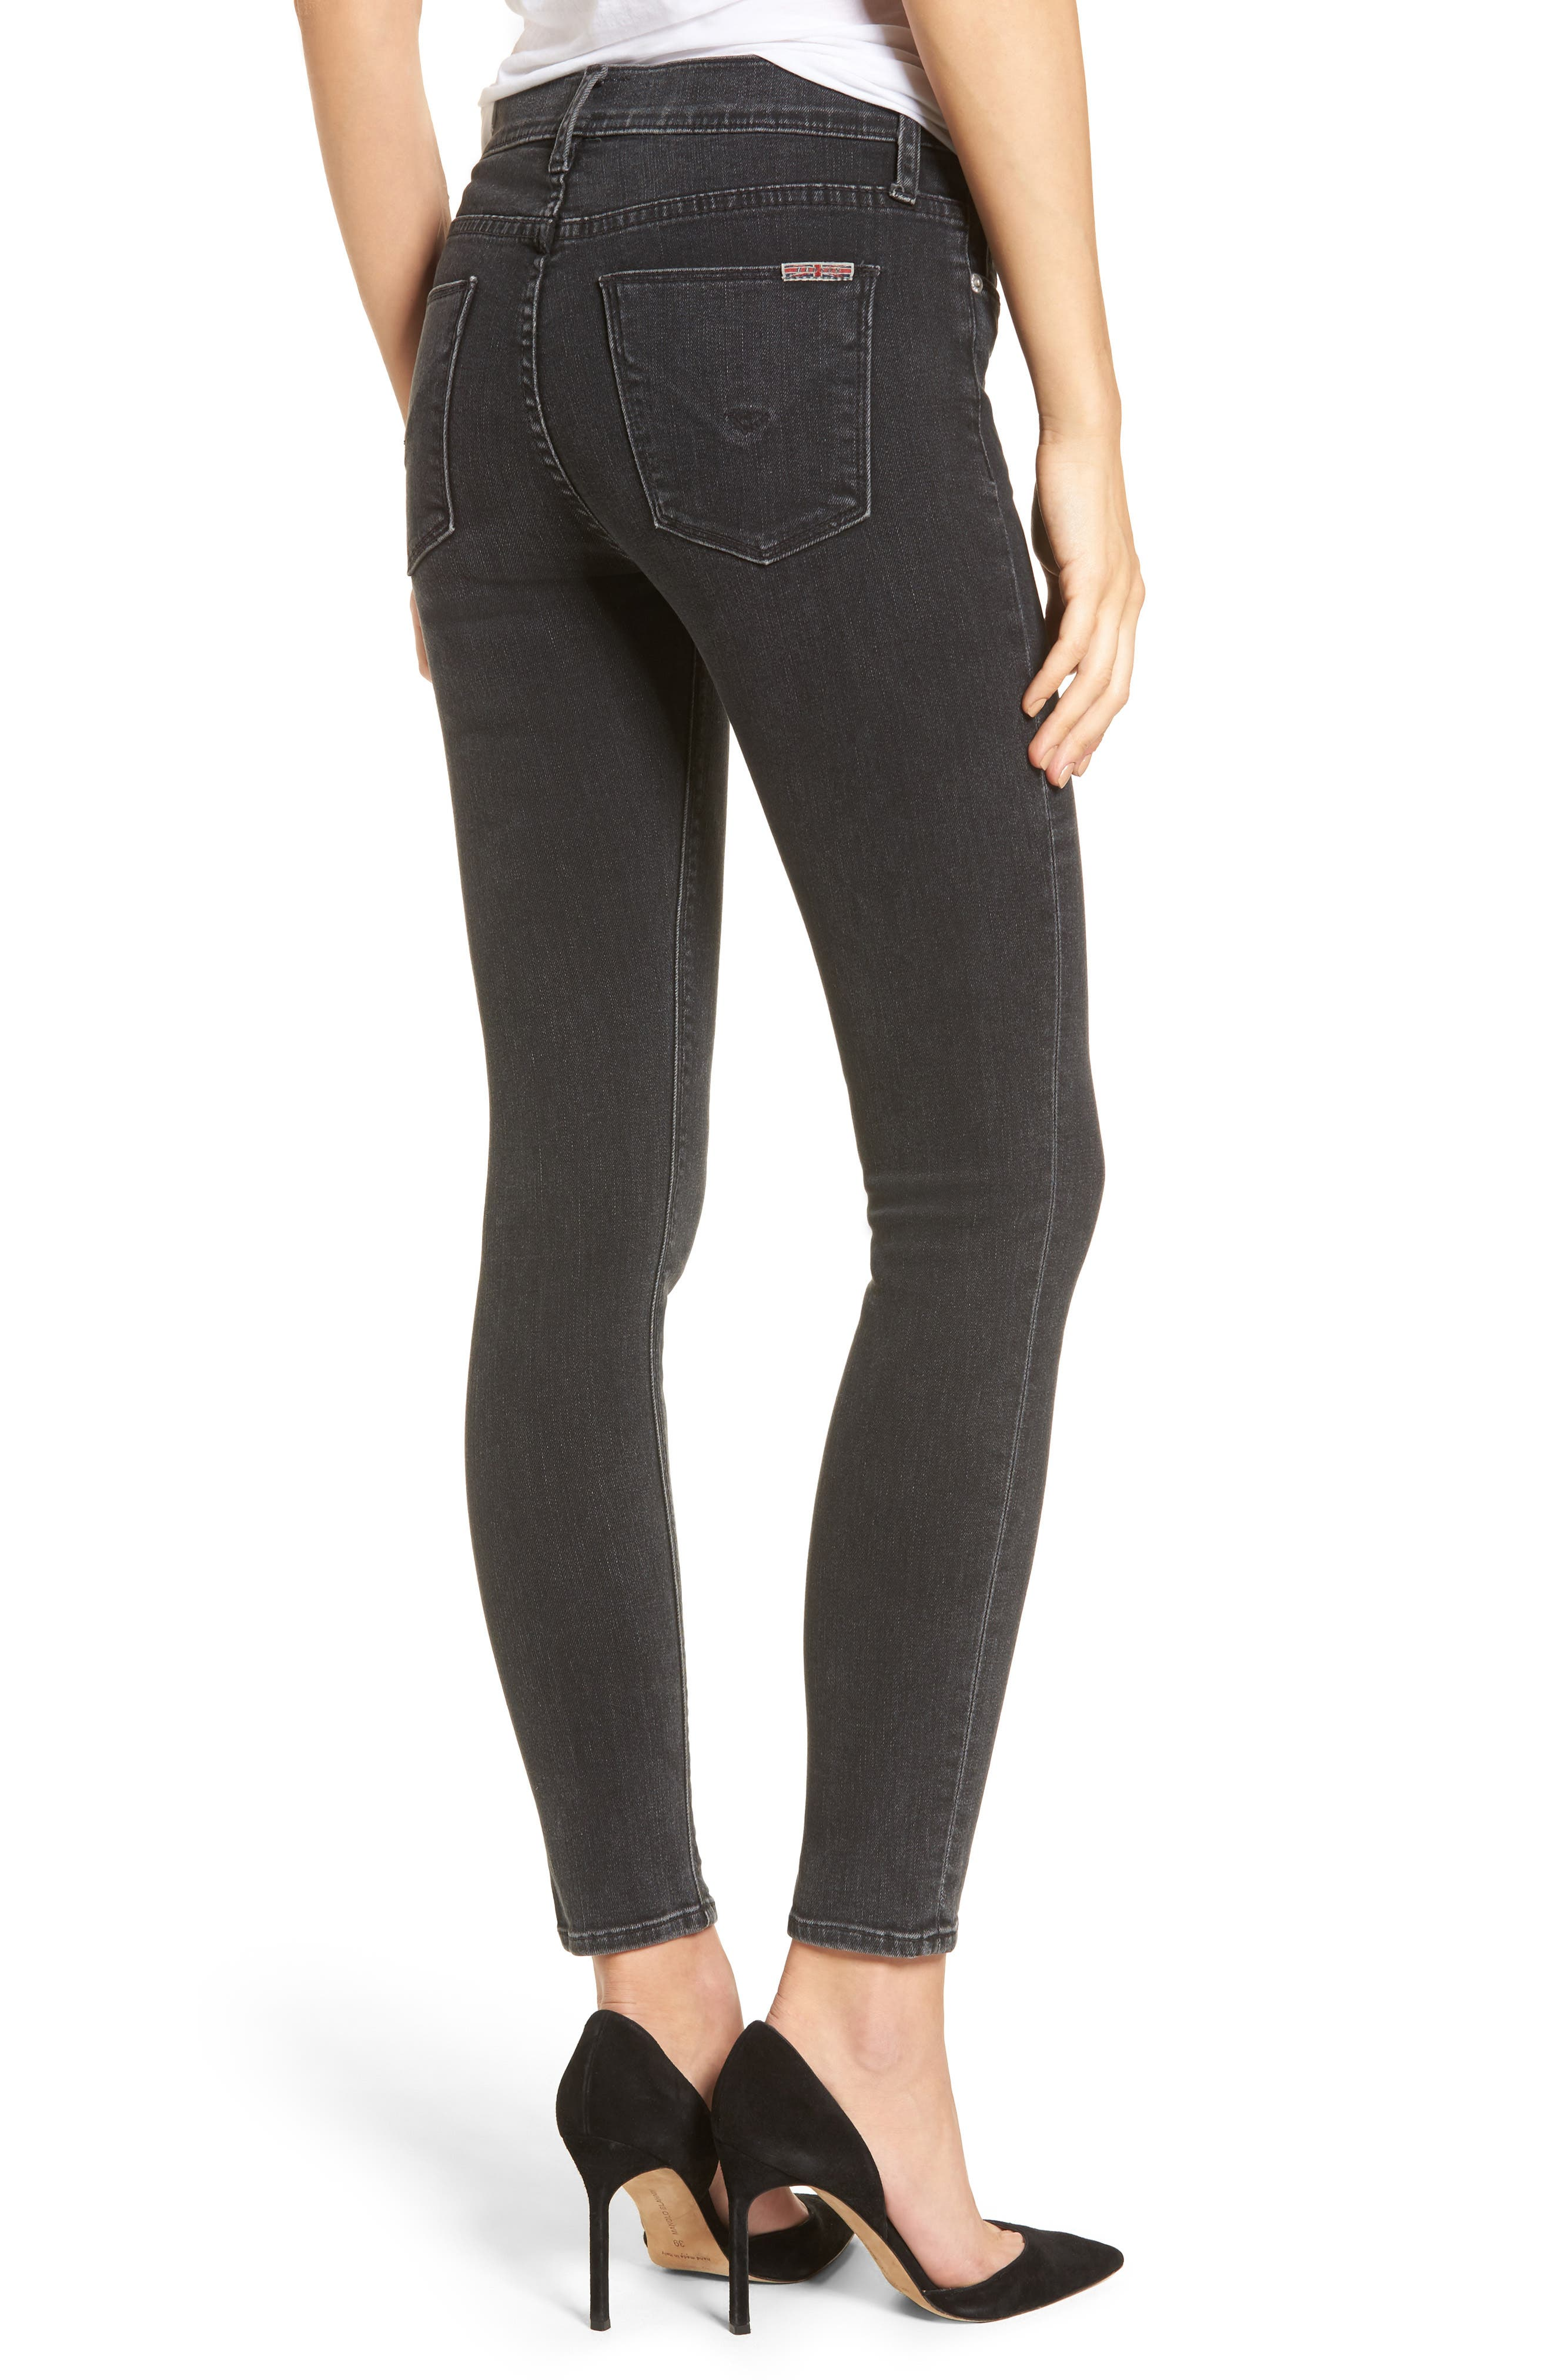 Nico Ankle Skinny Jeans,                             Alternate thumbnail 2, color,                             004